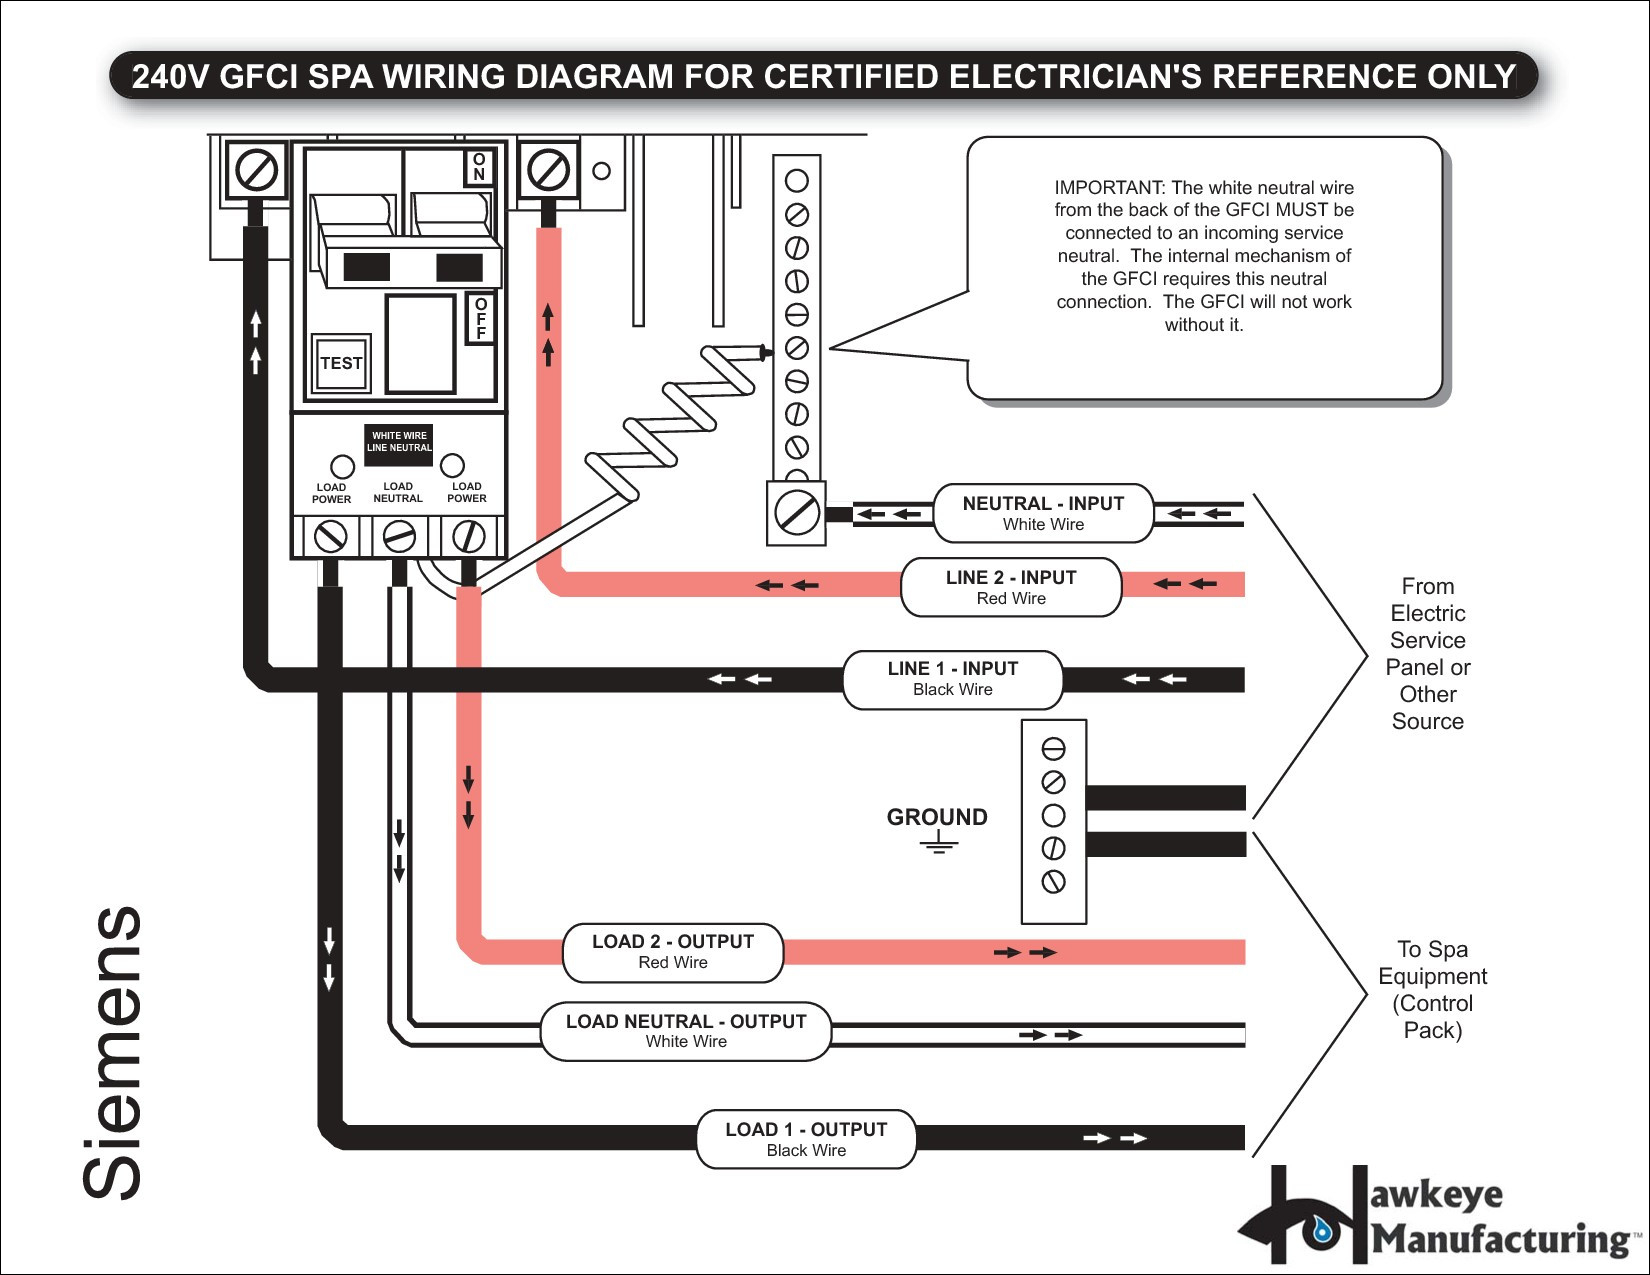 wiring diagrams circuit breaker along with double pole gfci breaker 2 pole gfci breaker wiring diagram 2p gfci breaker wiring diagram [ 1650 x 1275 Pixel ]